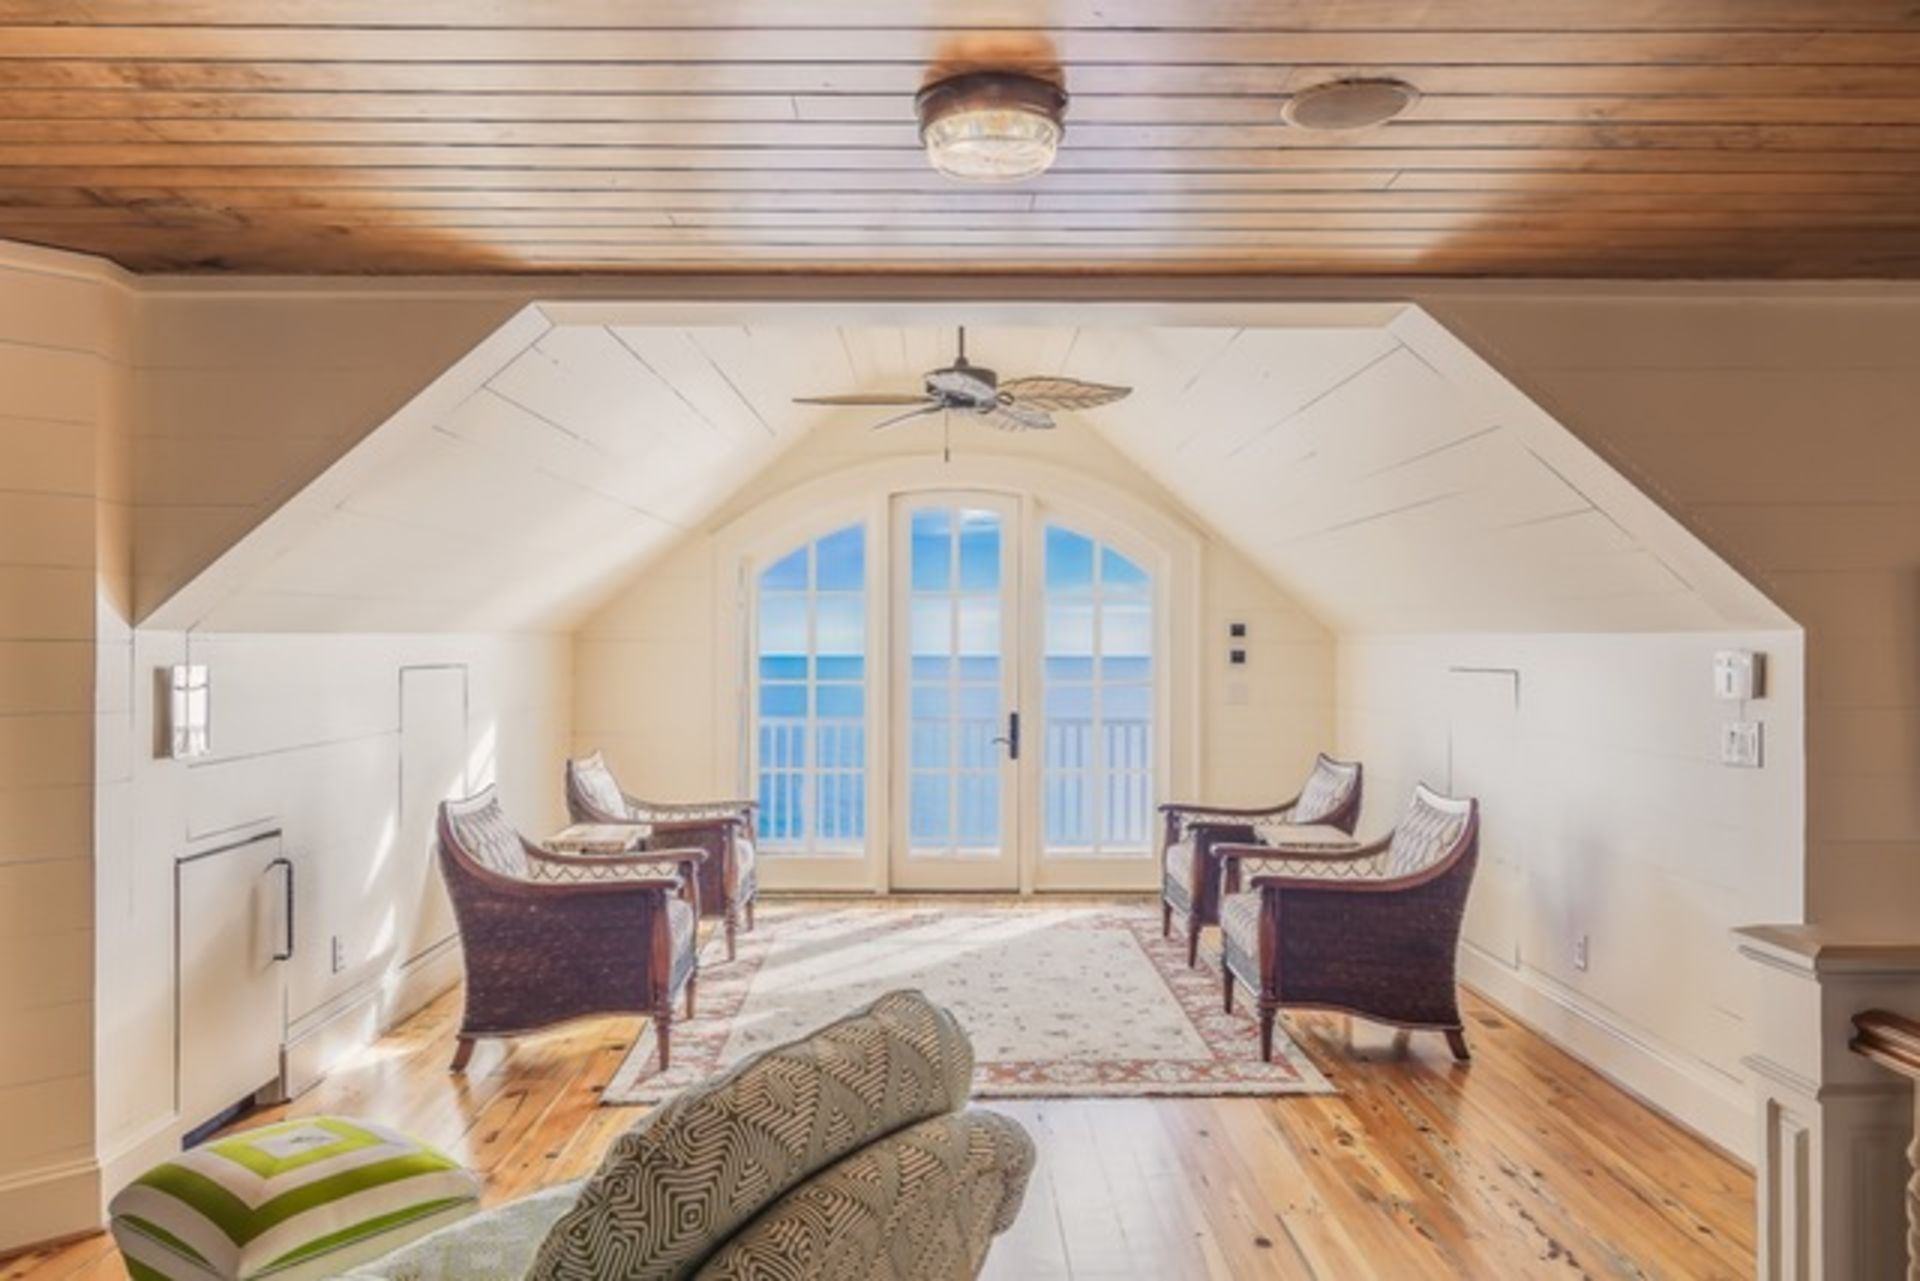 How to Finance Purchasing a Vacation Home